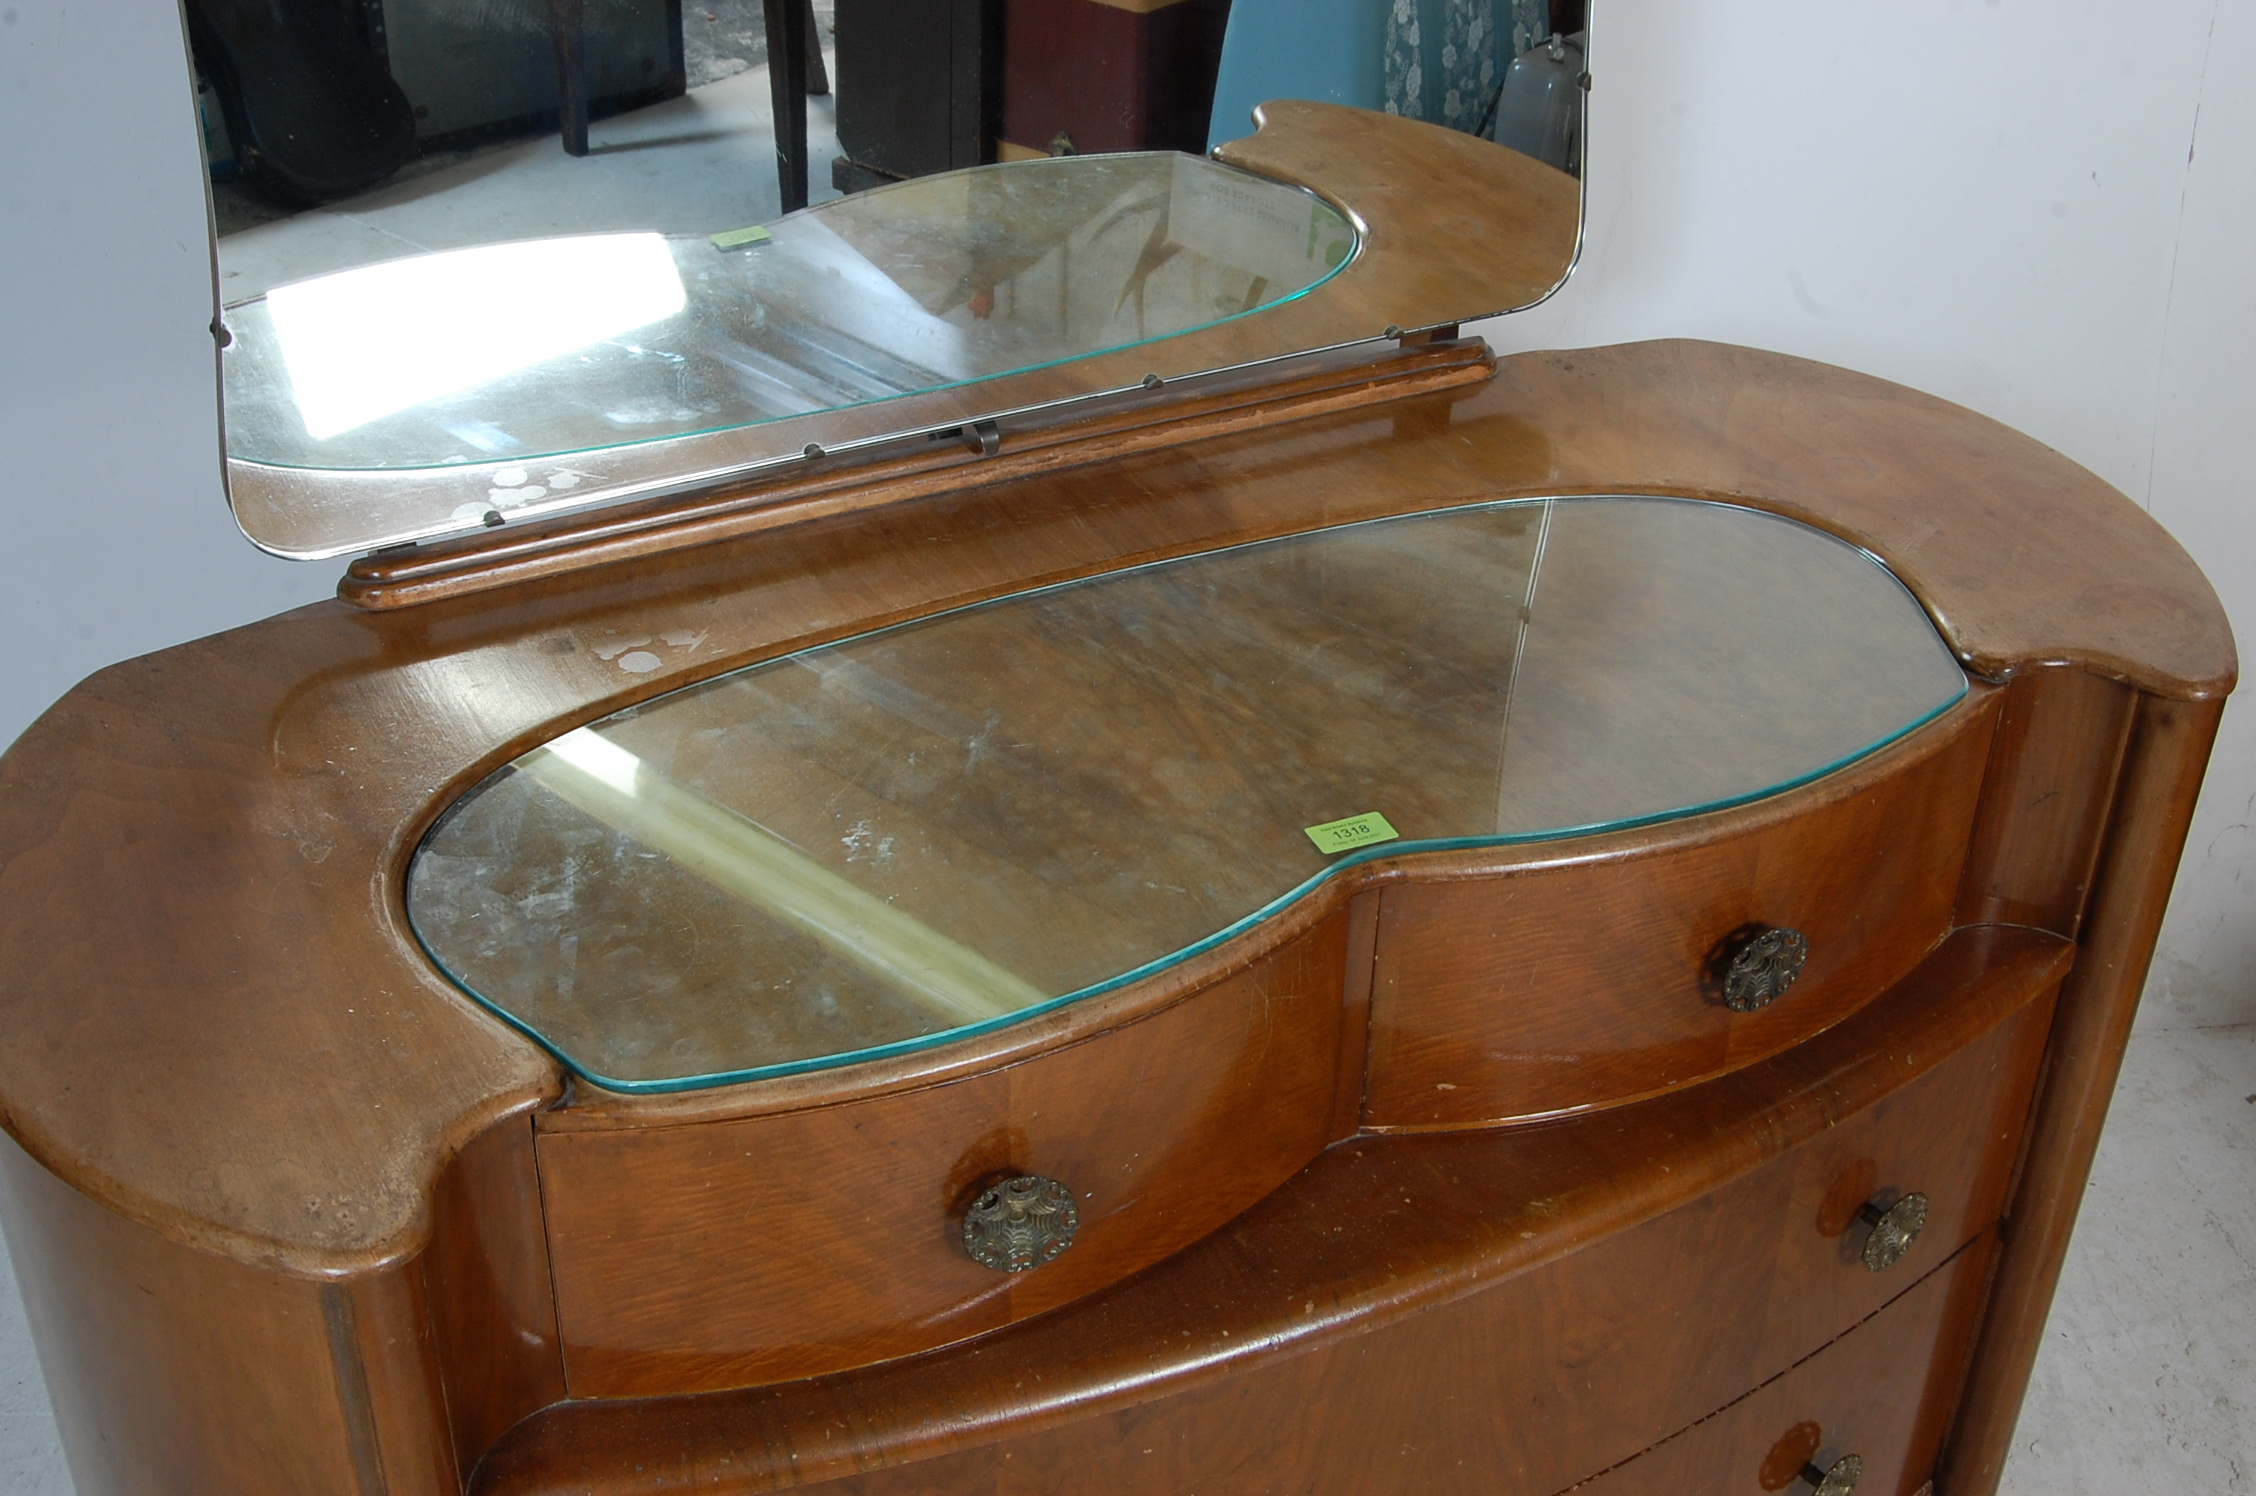 1950'S ART DECO STYLE WALNUT DRESSING TABLE - Image 4 of 5